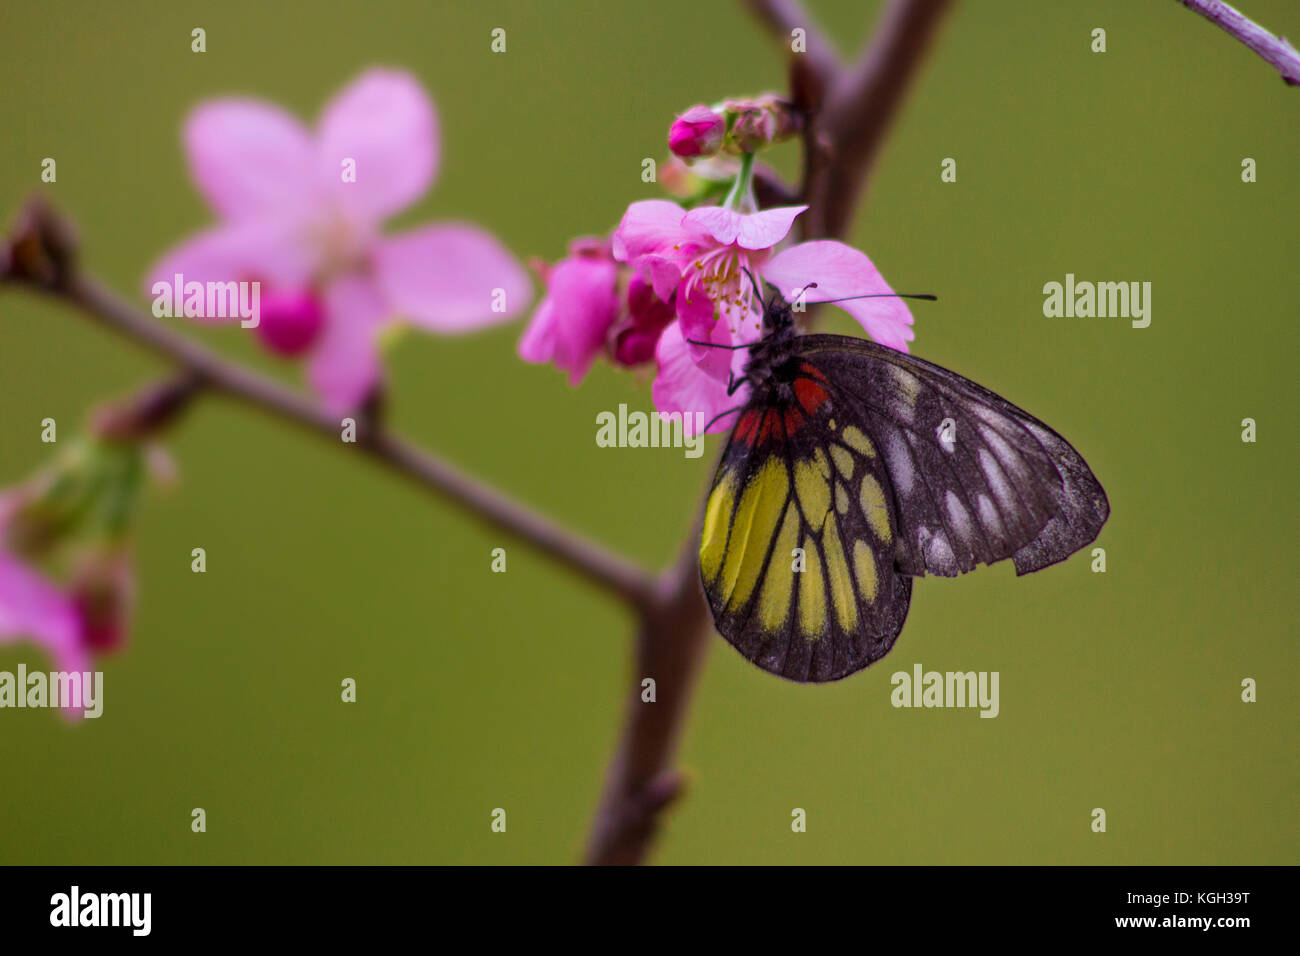 Perched on peach blossom, a butterfly sips nectar and pollinates the flowers. - Stock Image